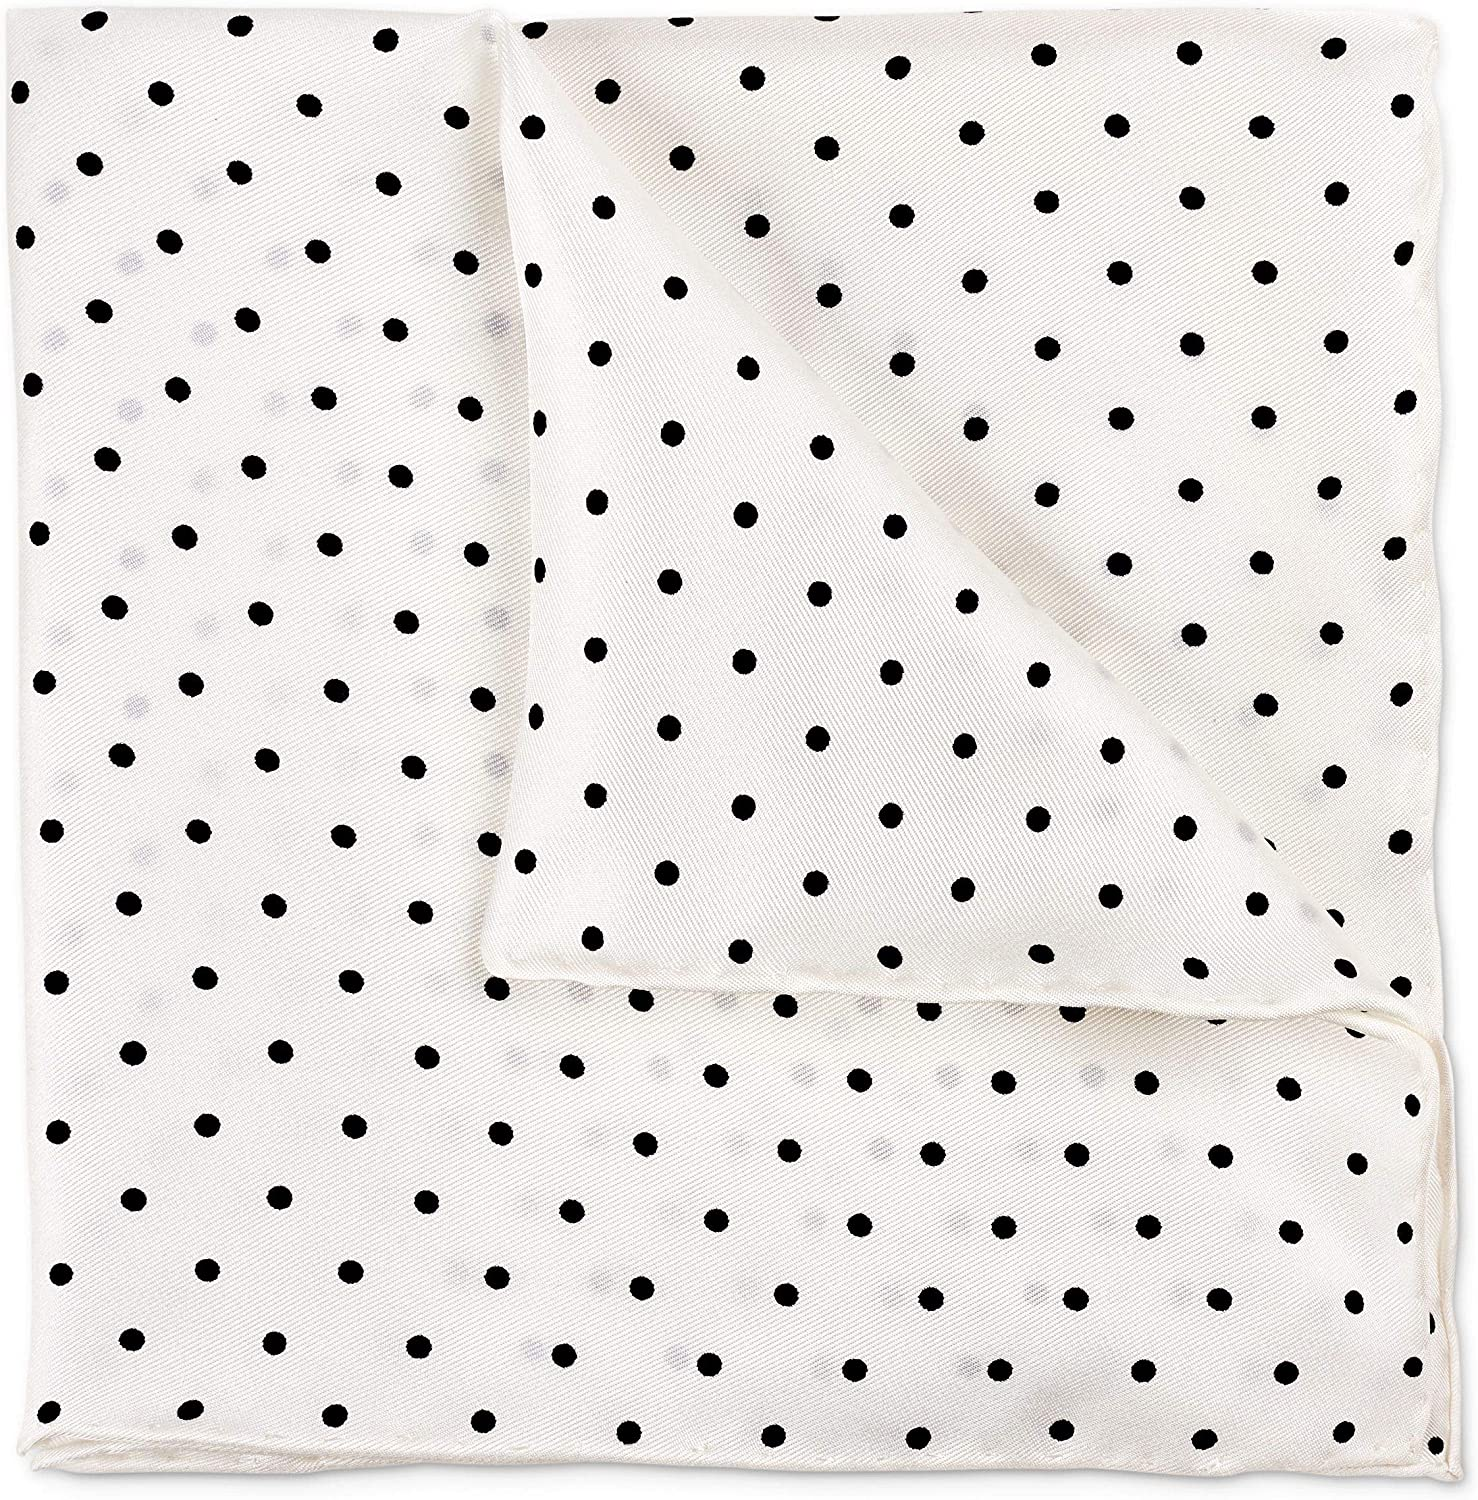 100% Silk Twill Solid White Pocket Square Gift Boxed by Puentes Denver (Various Colors)